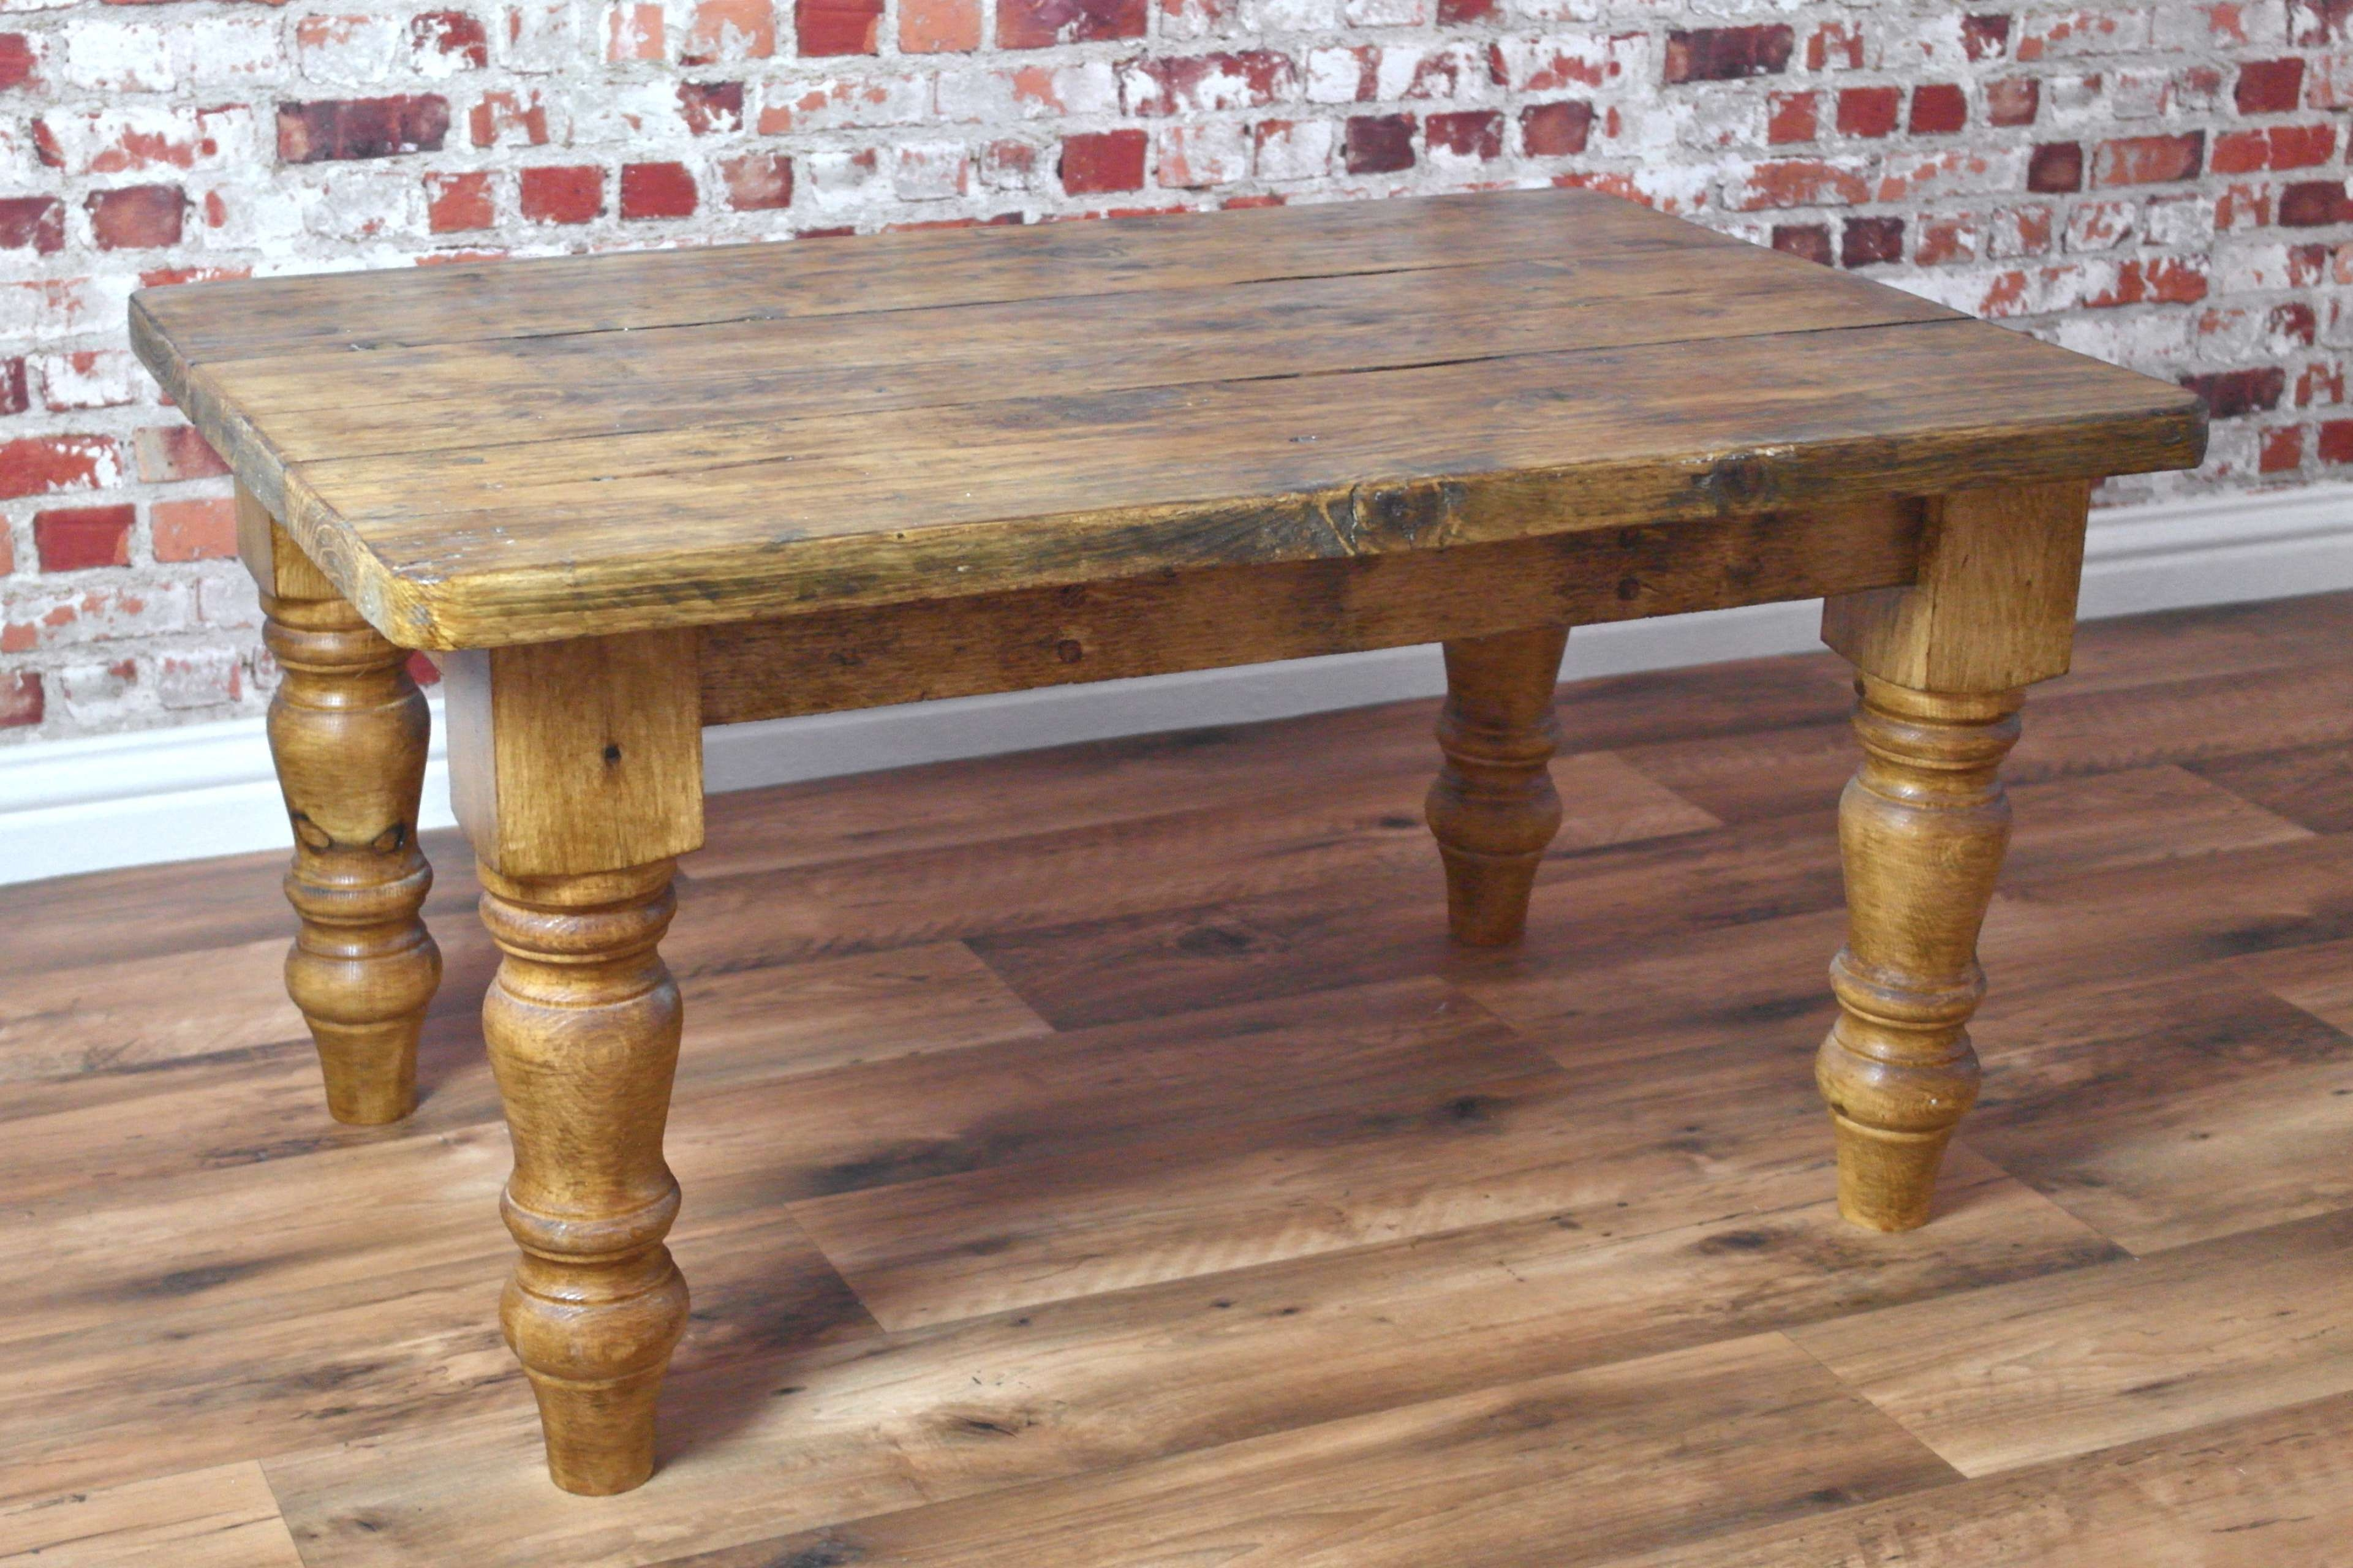 Newest Antique Rustic Coffee Tables With Regard To Rustic Coffee Table Made From Reclaimed Pine Farmhouse Style (View 13 of 20)